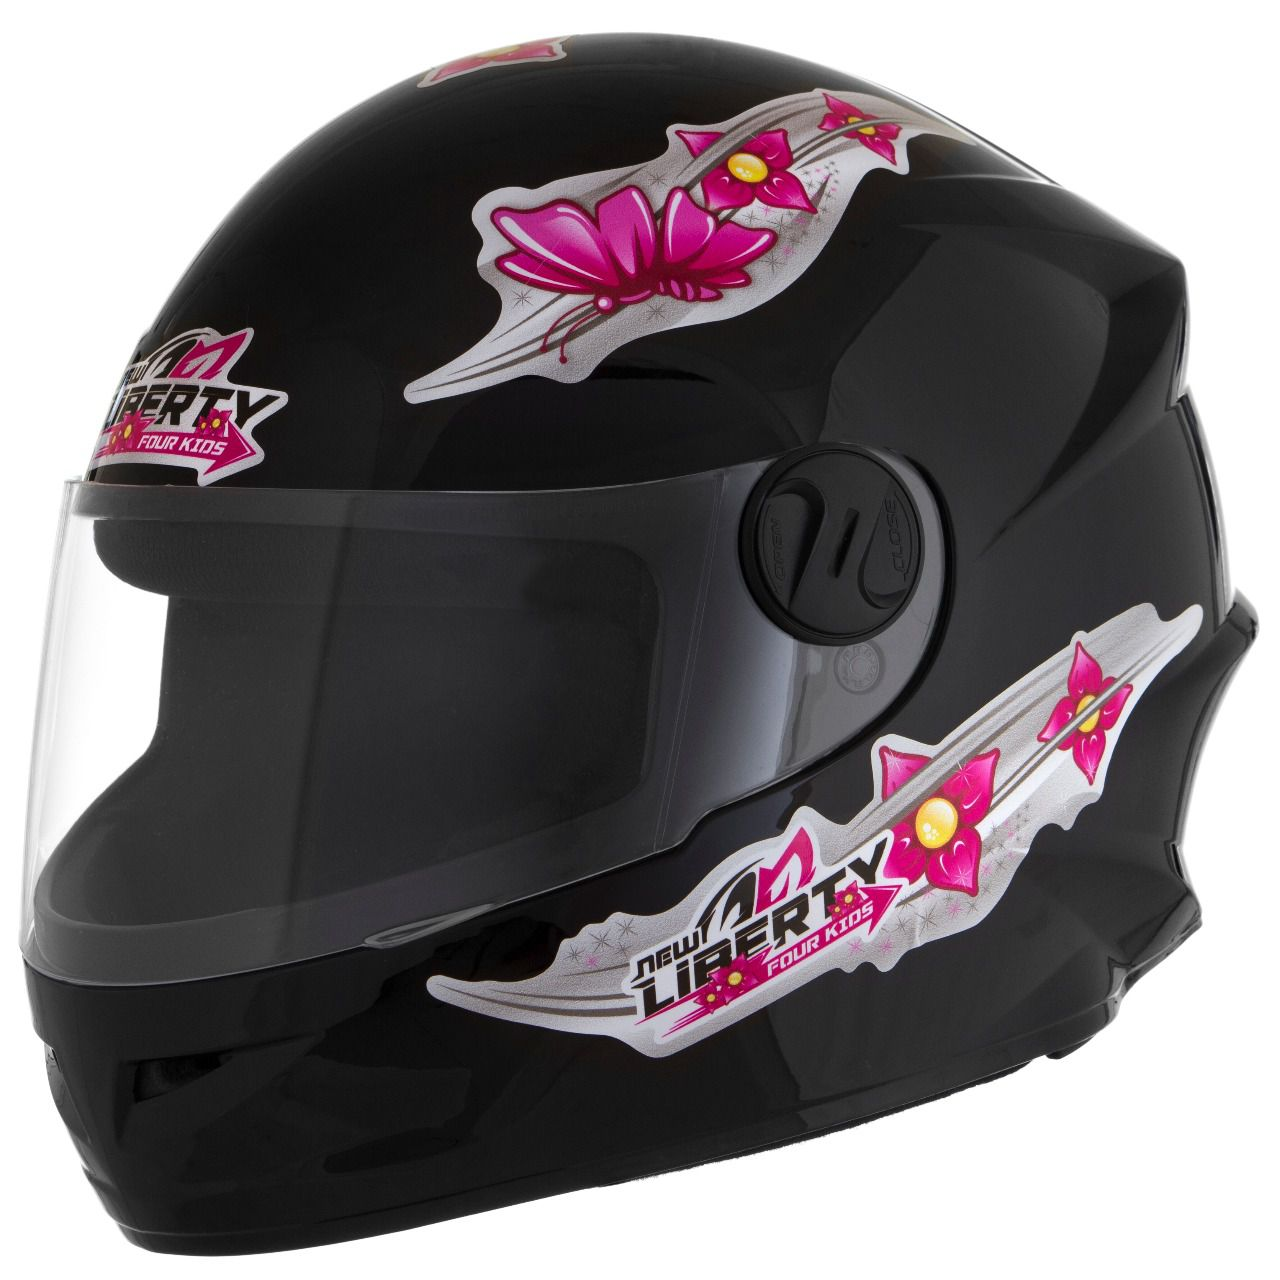 Capacete Infantil Liberty 4 Kids For Girls Preto